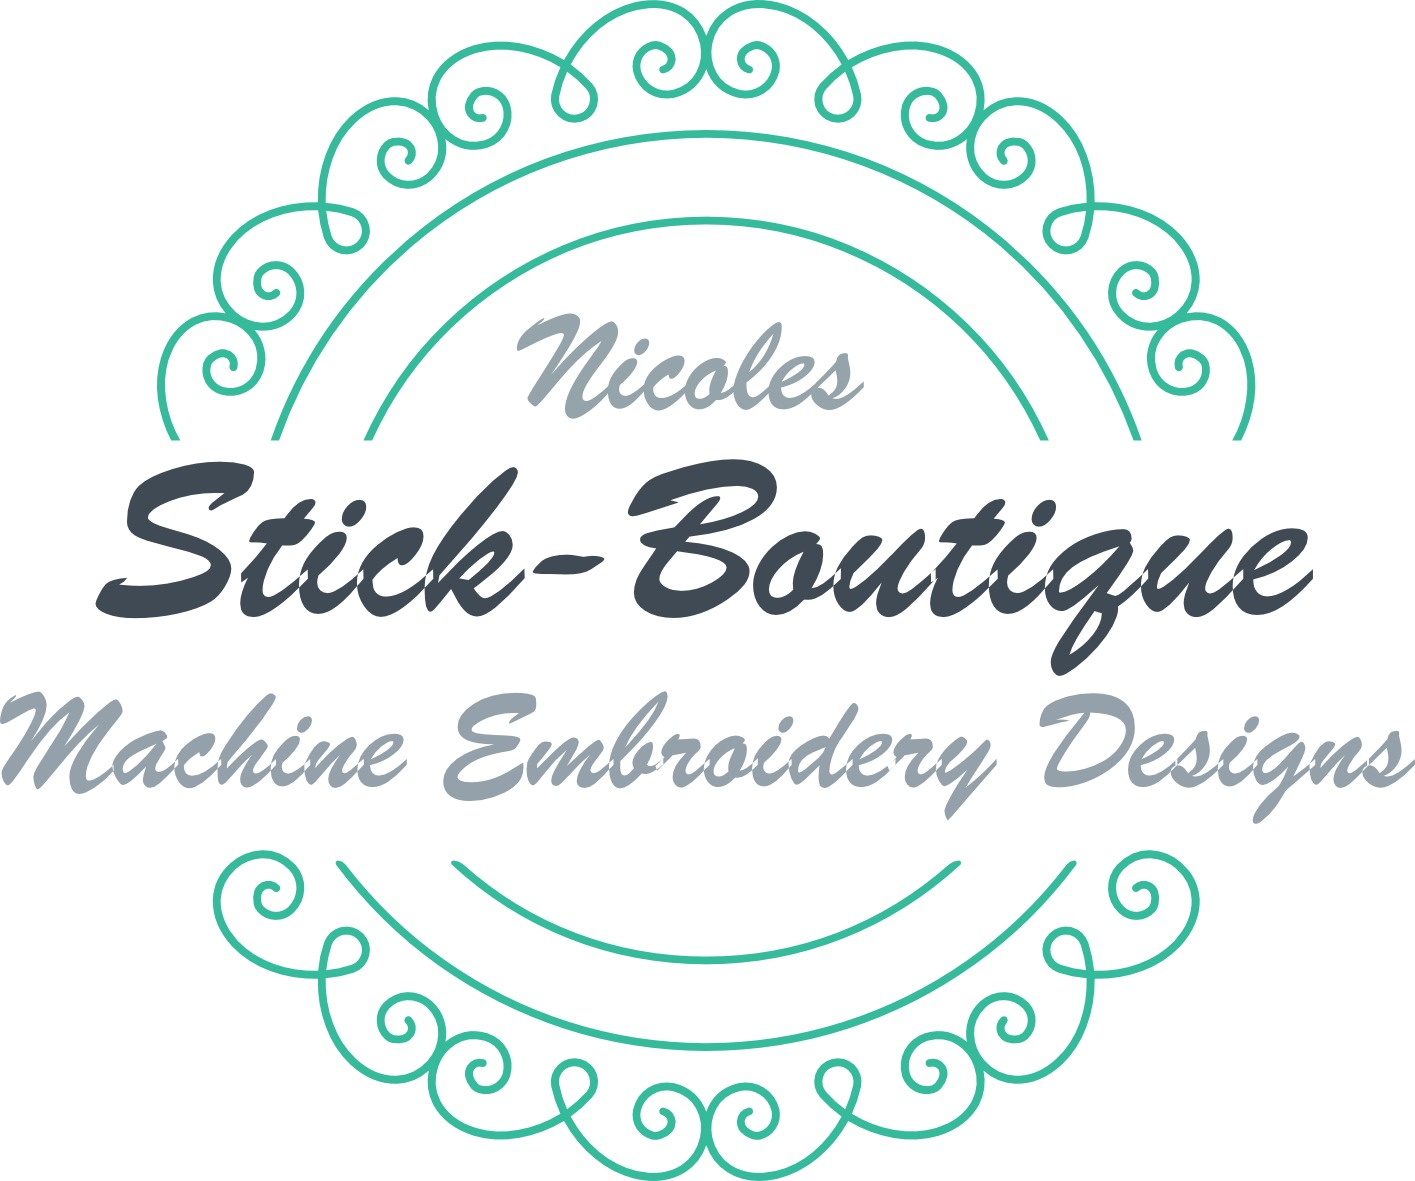 Stick-Boutique